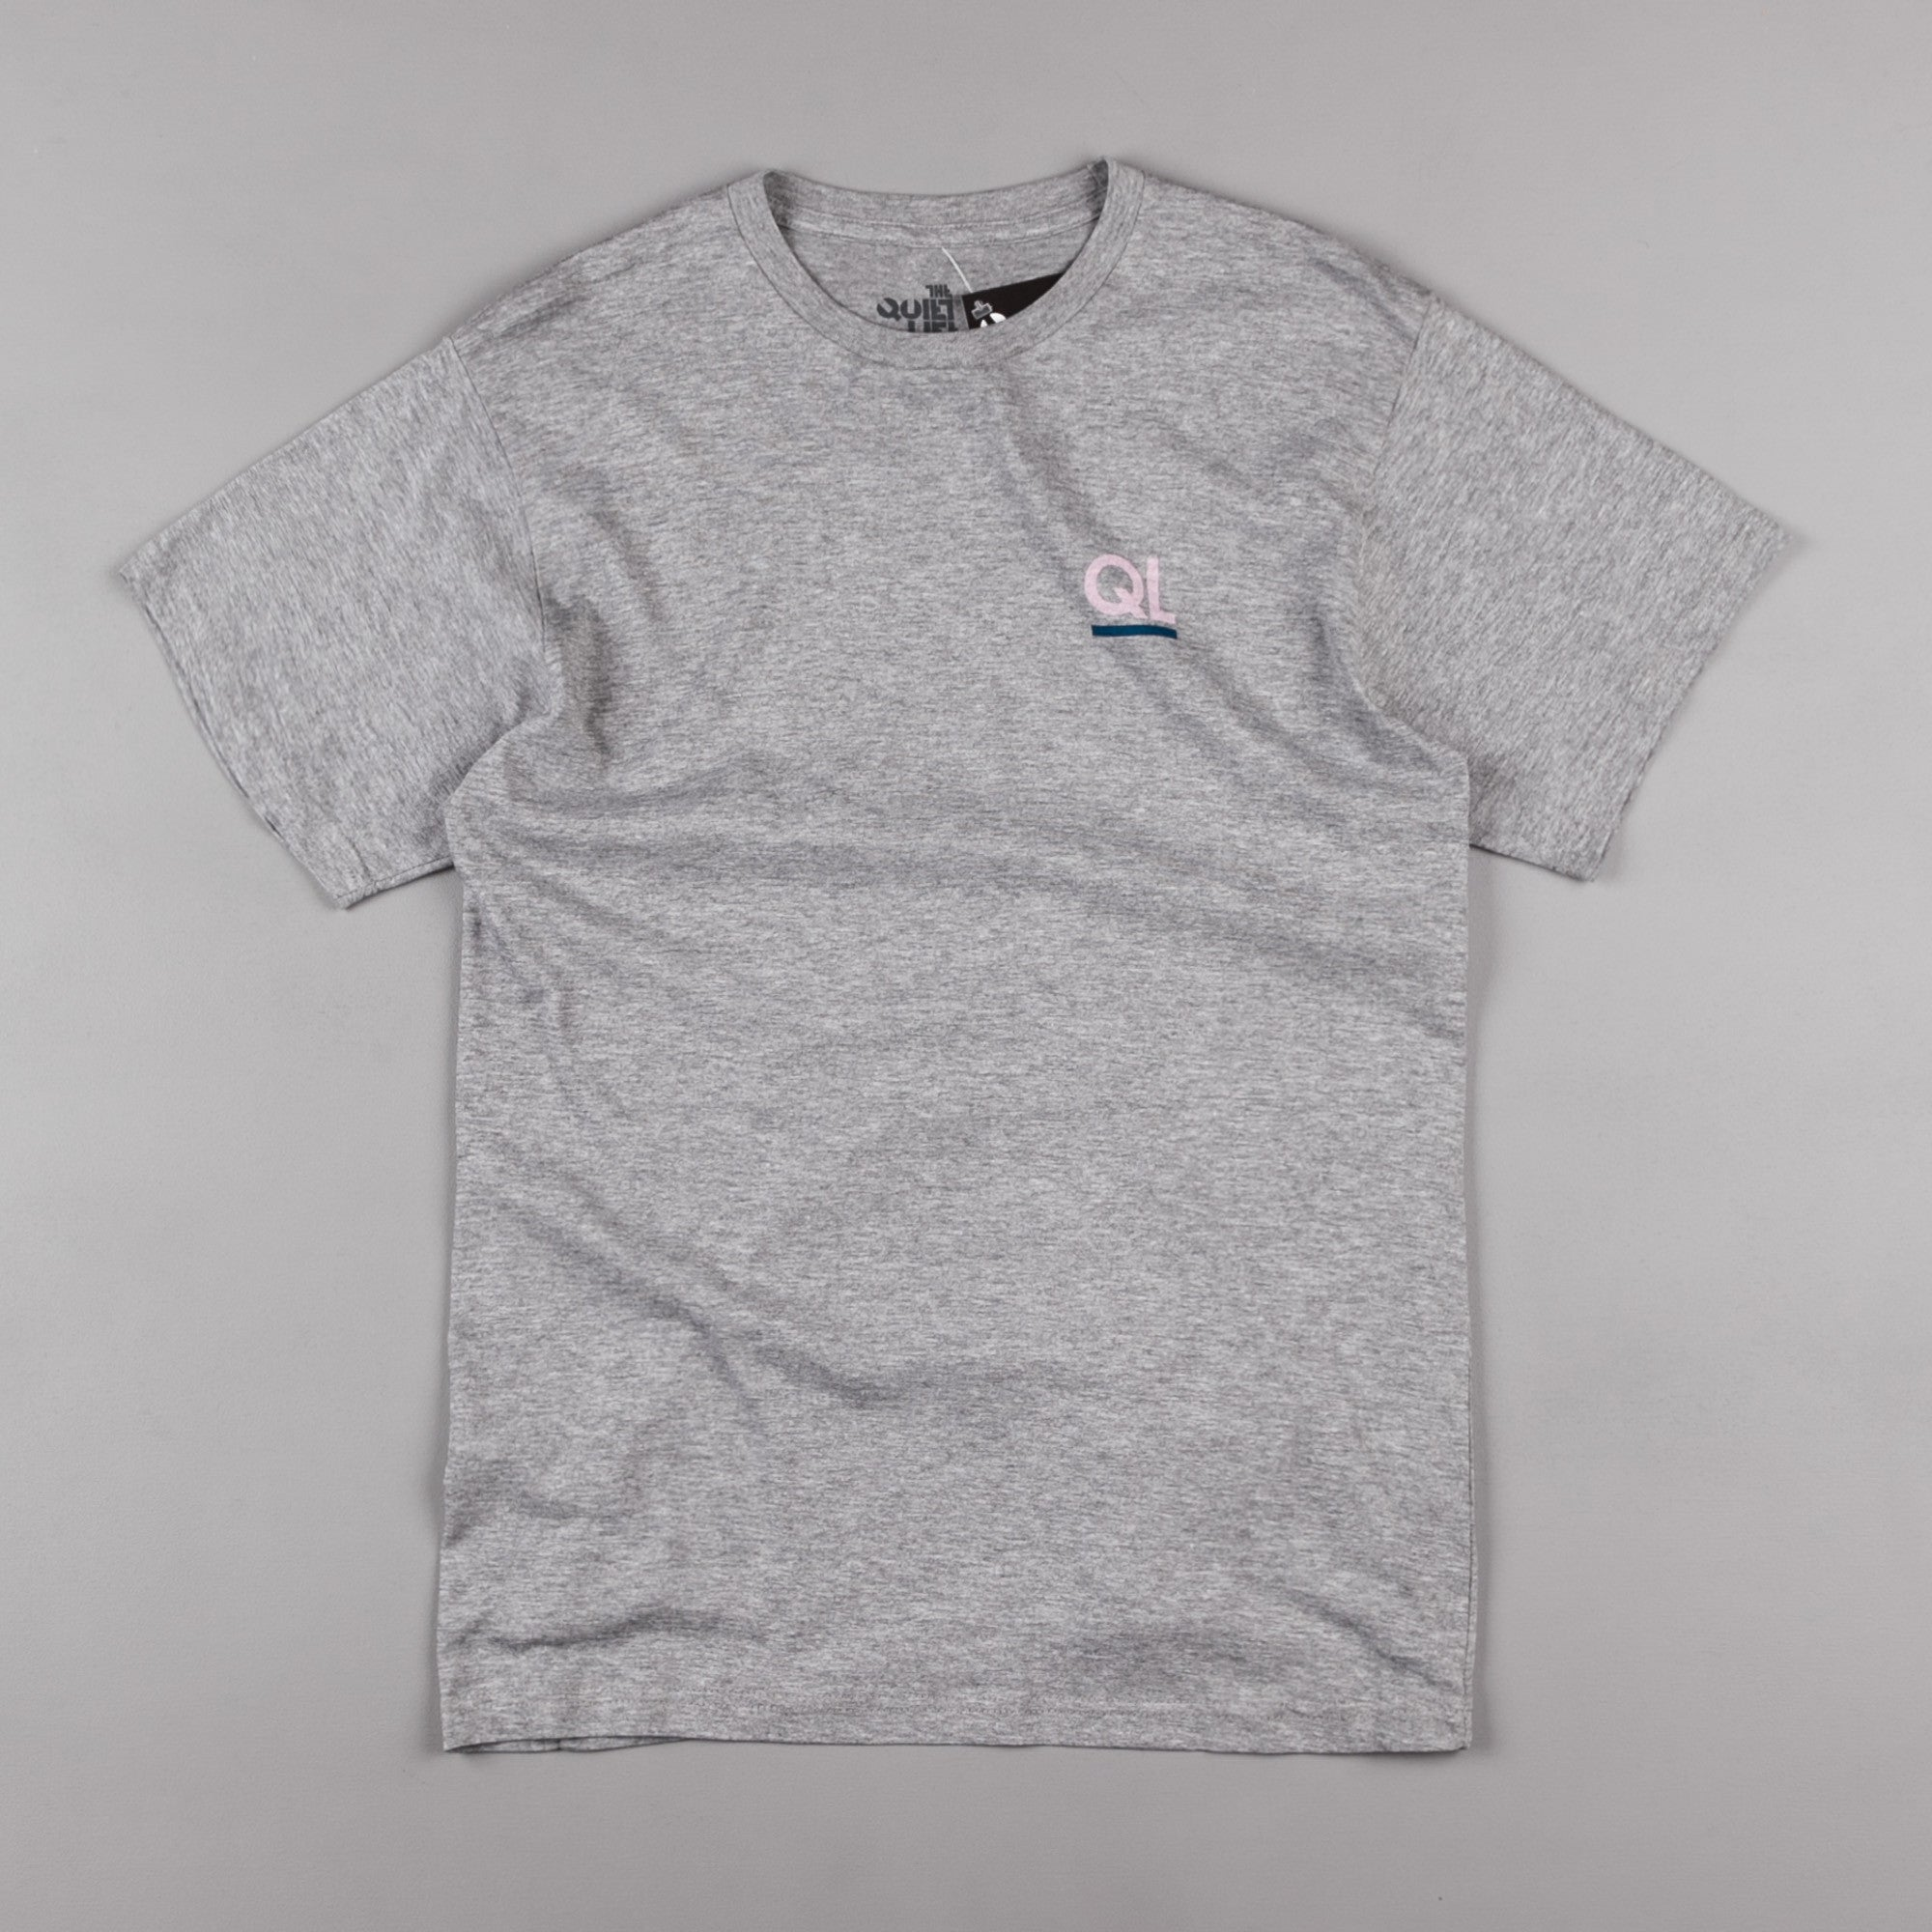 The Quiet Life Periodic T-Shirt - Heather Grey